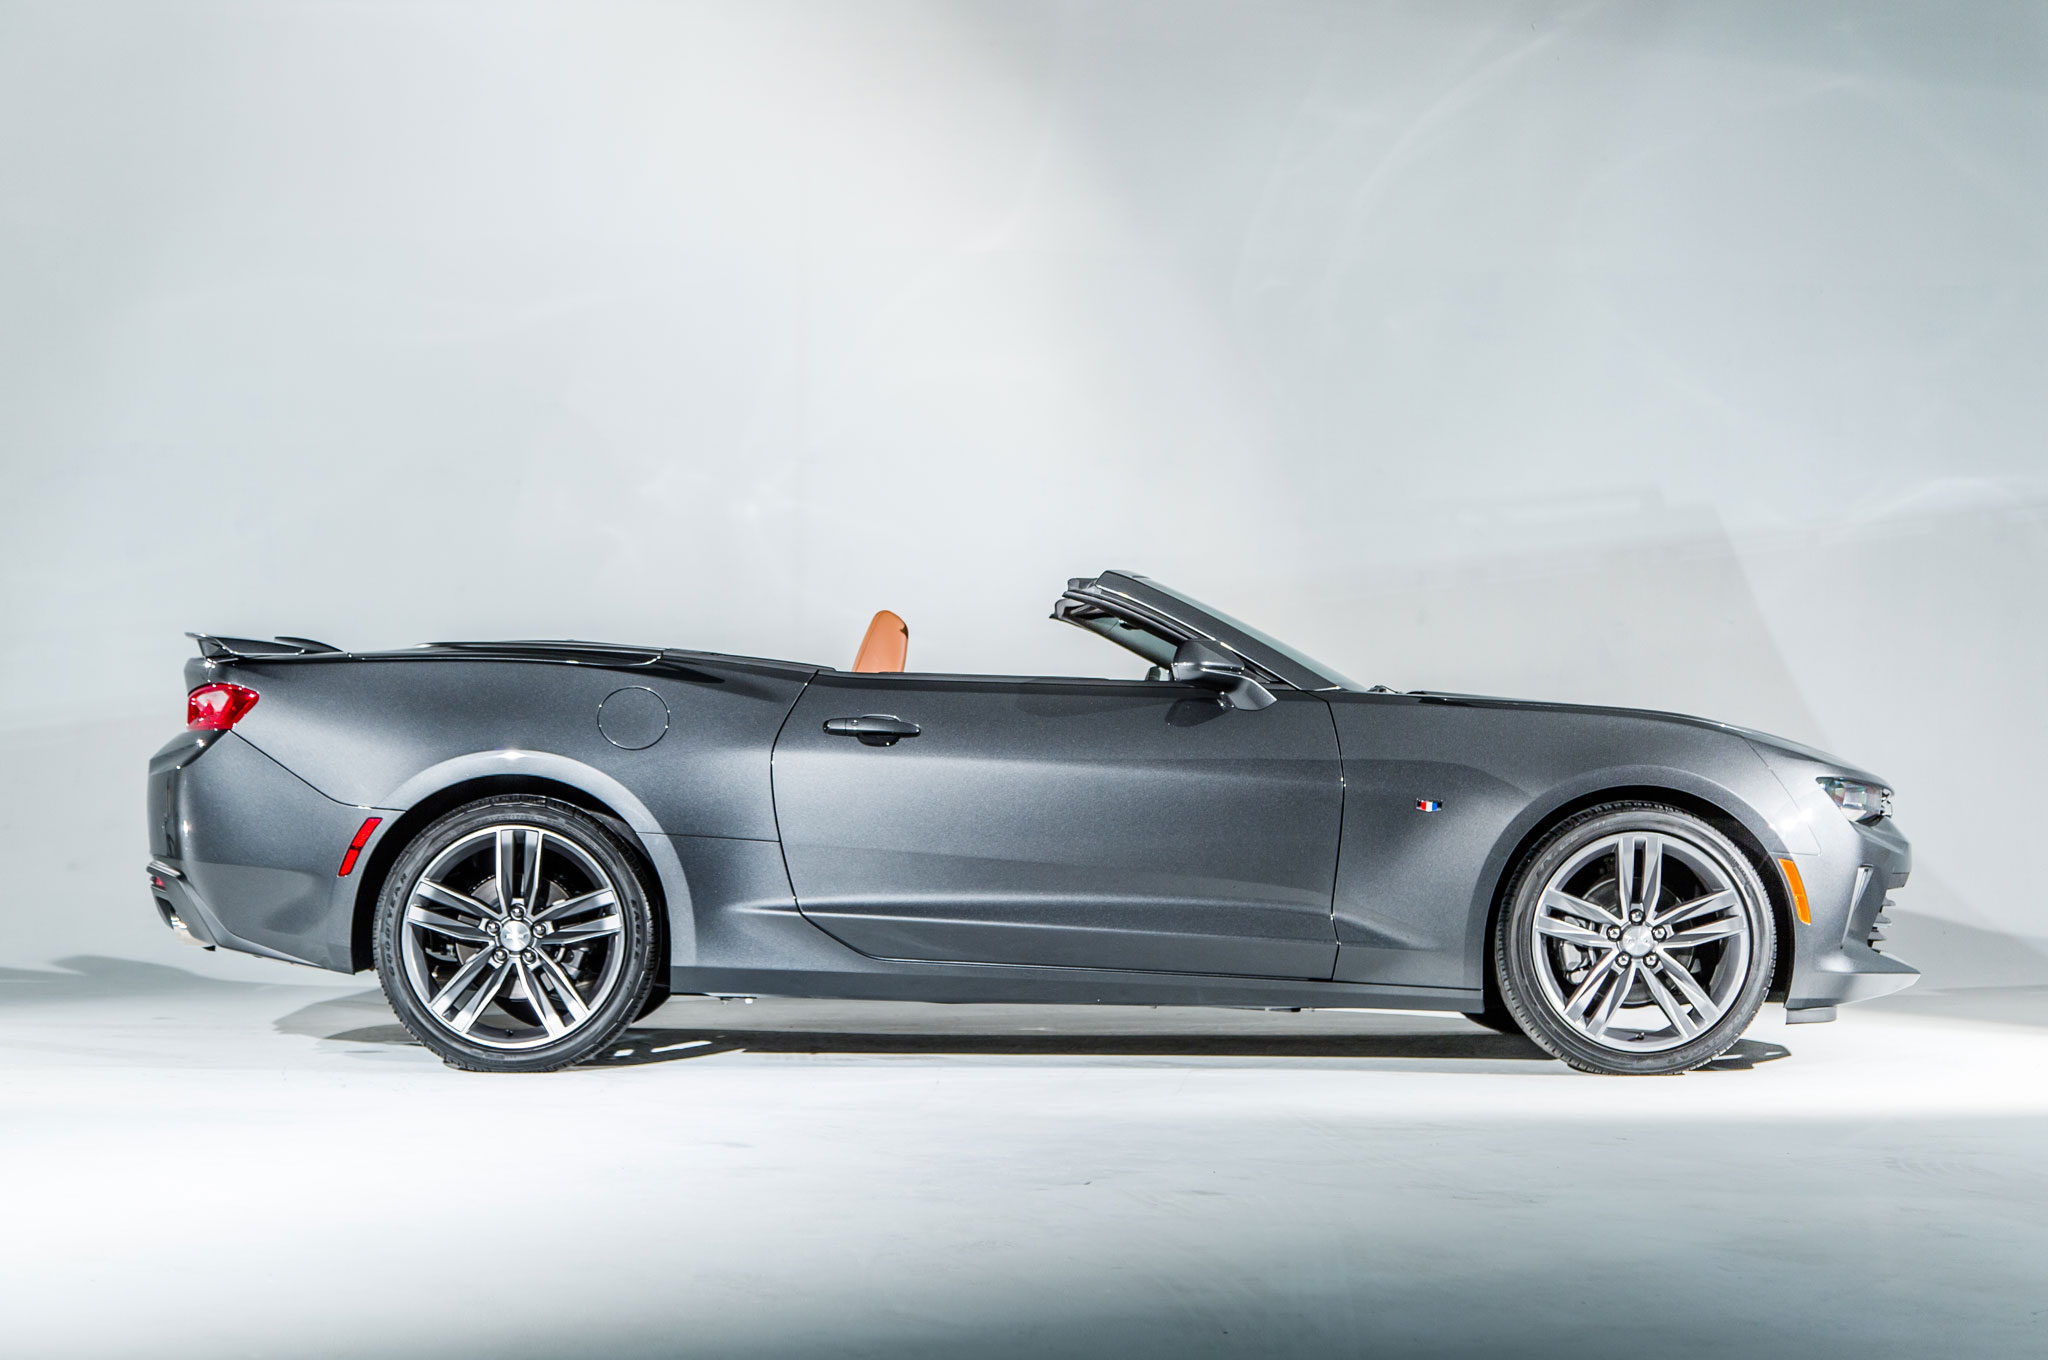 2016 Chevrolet Camaro Convertible Side Profile